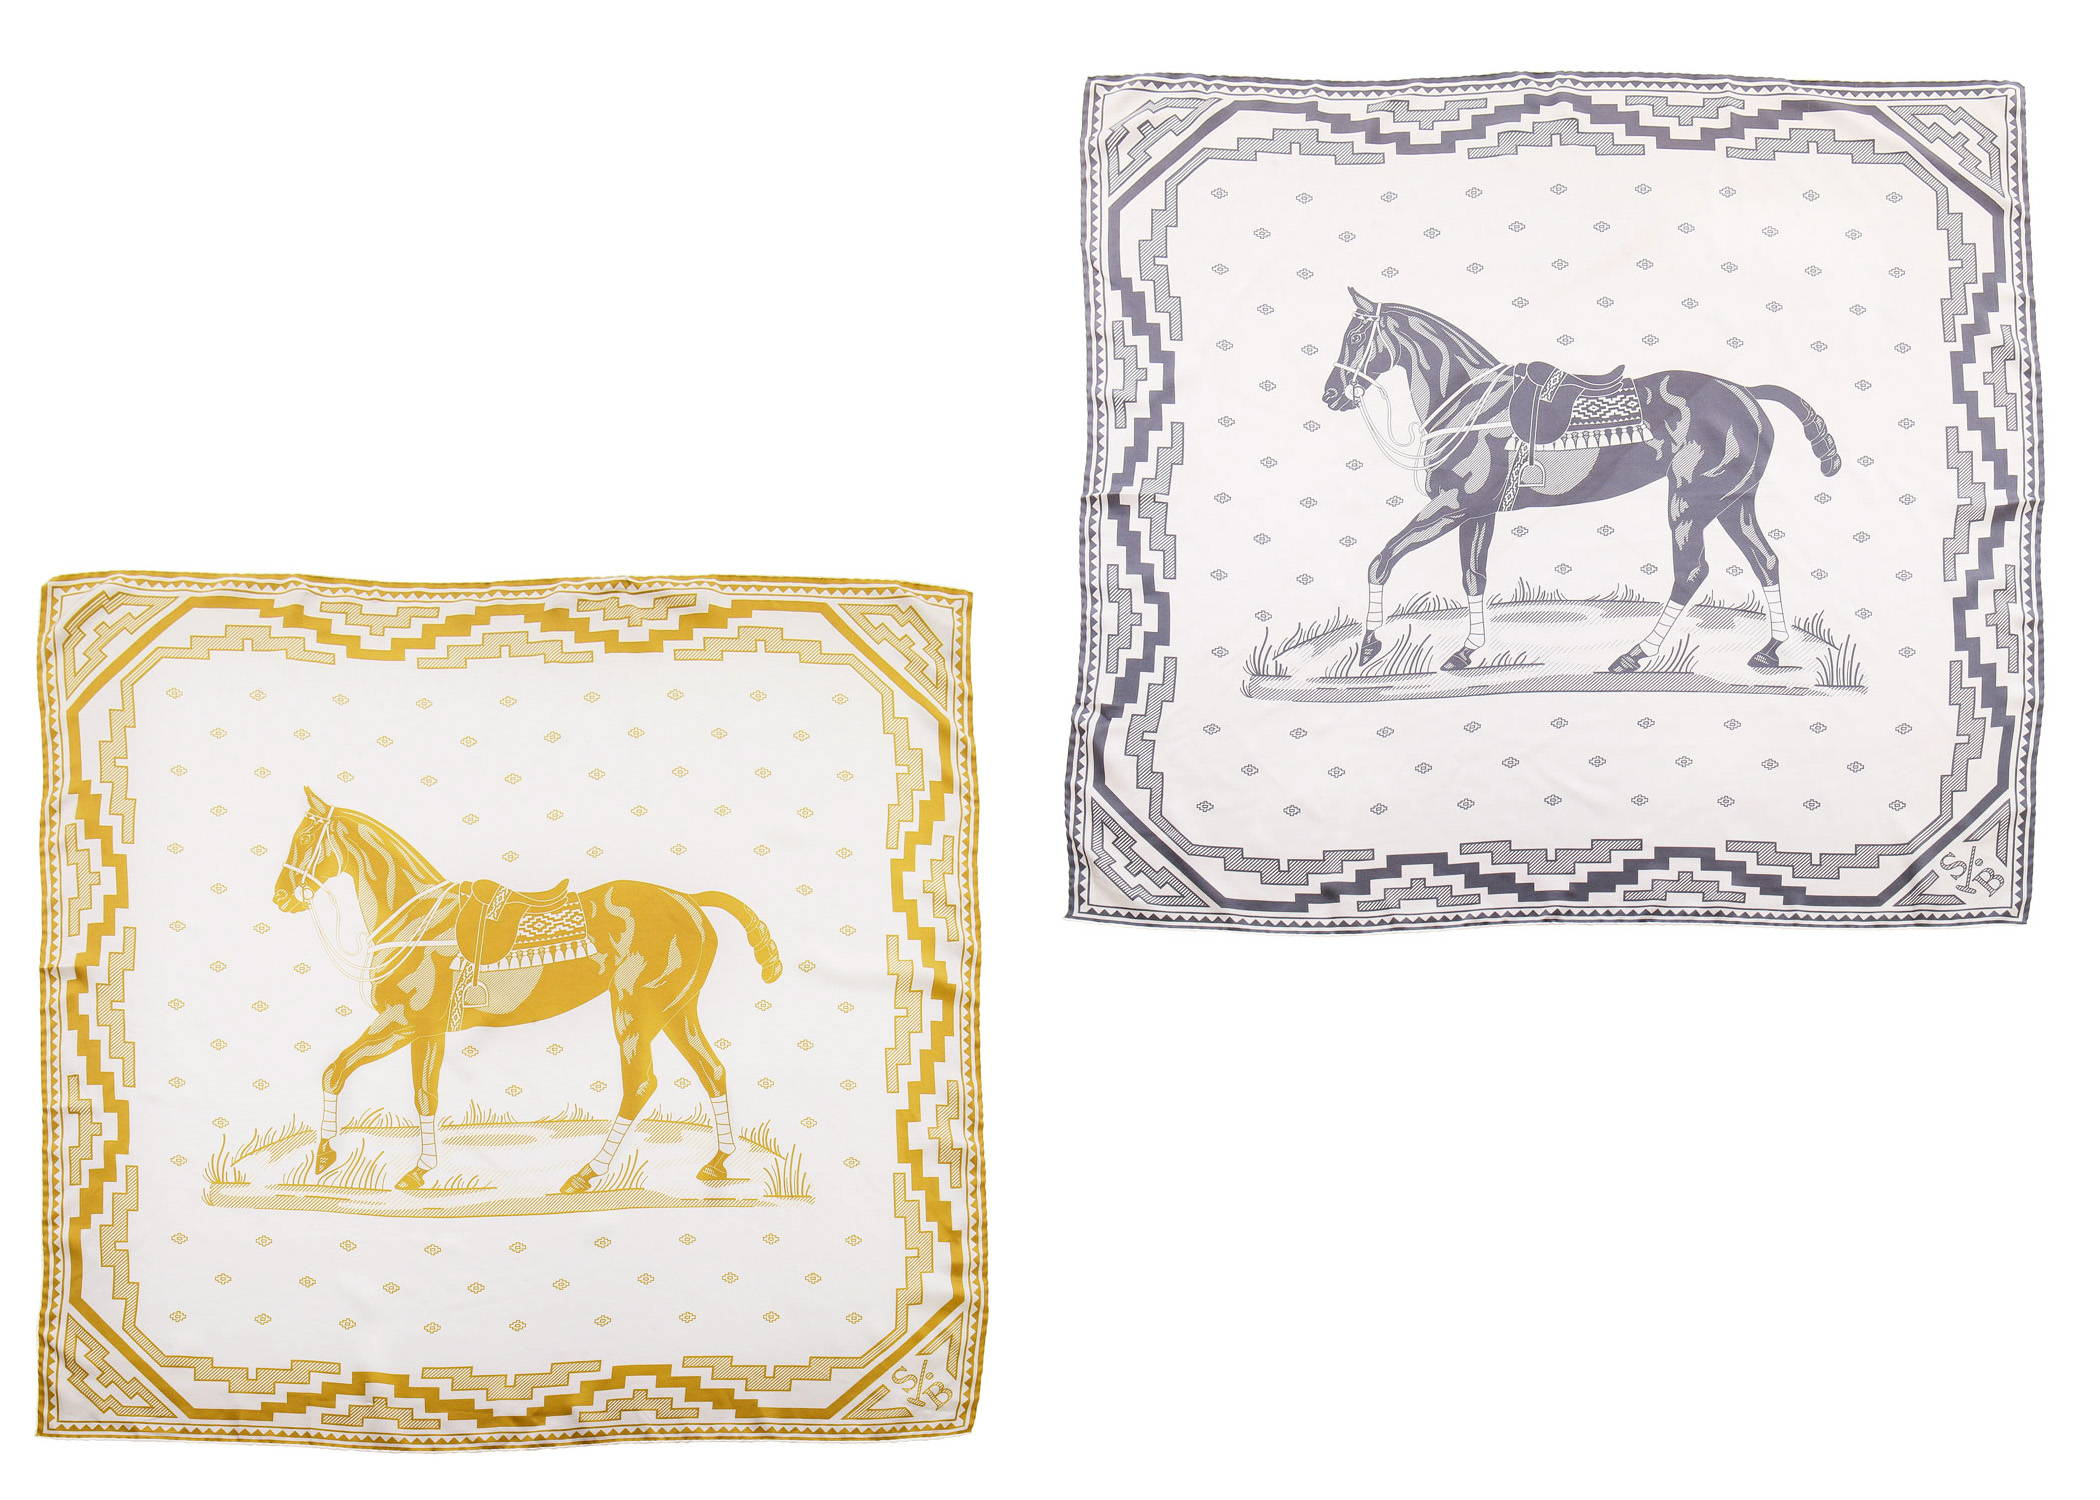 Display of Stick & Ball equestrian-inspired handmade Grey & gold Polo Pony Silk Scarf